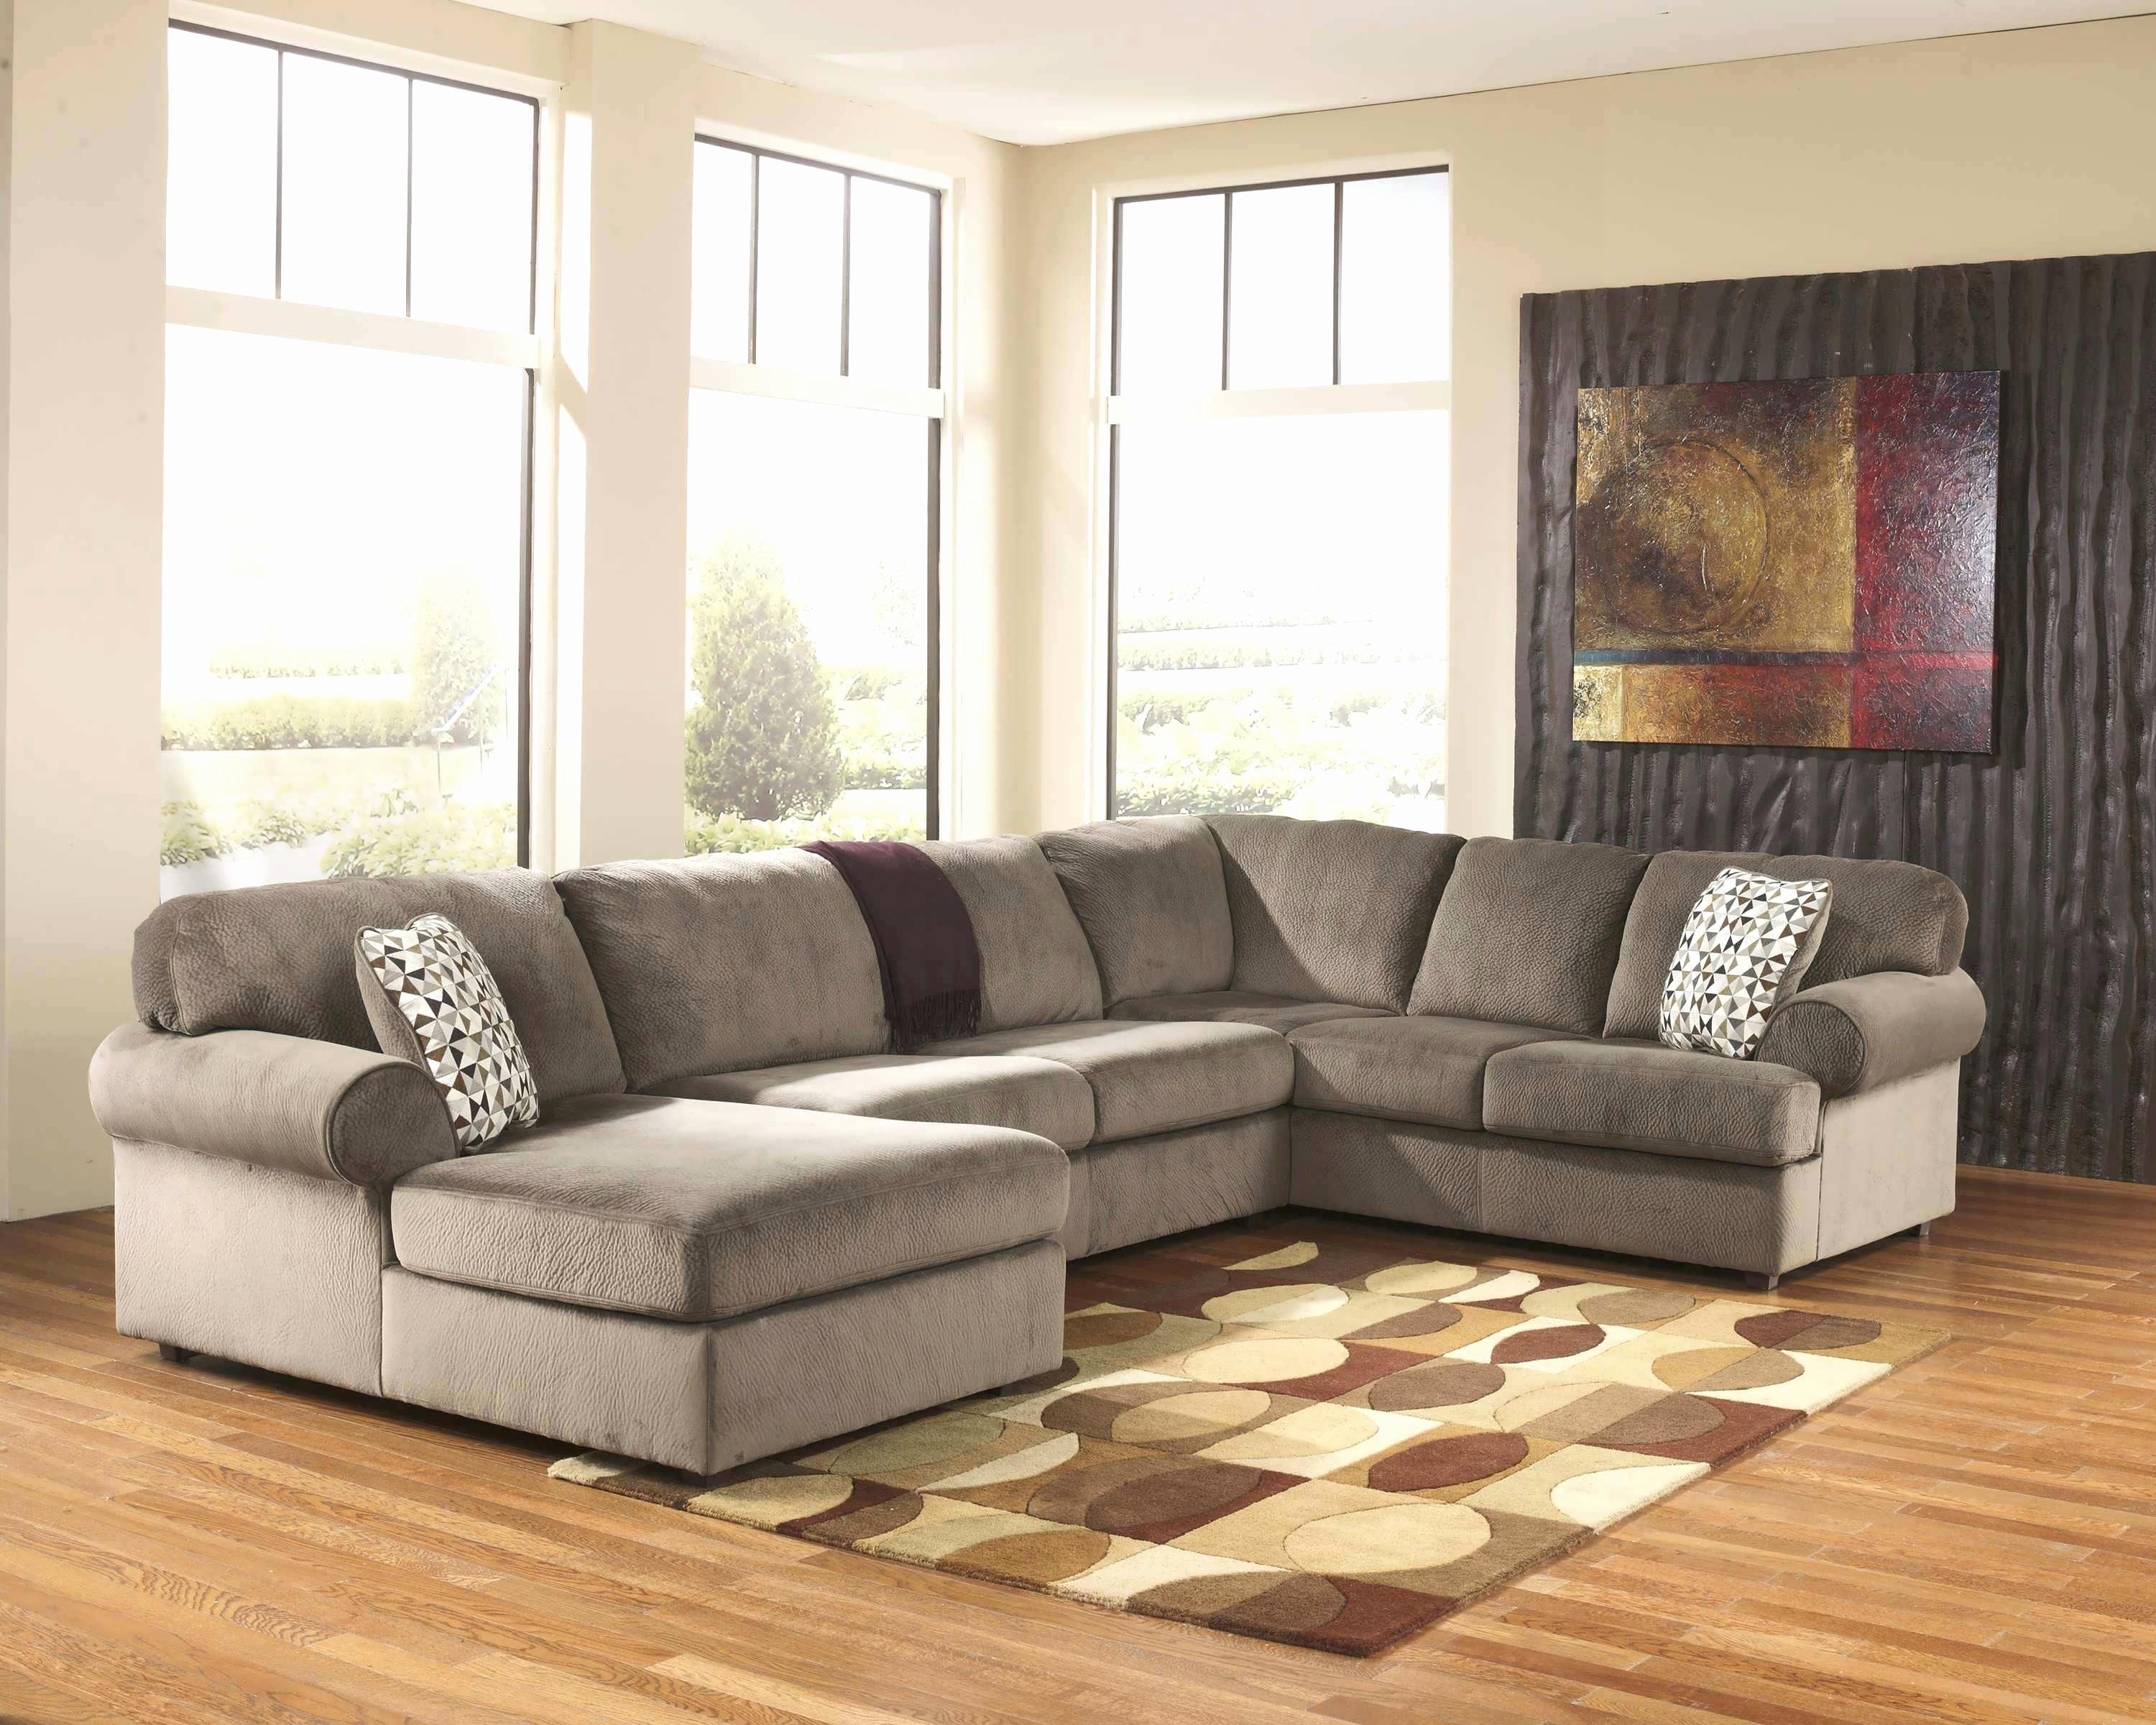 Awesome Sectional Sofa Montreal 2018 – Couches Ideas with Kijiji Montreal Sectional Sofas (Image 3 of 10)